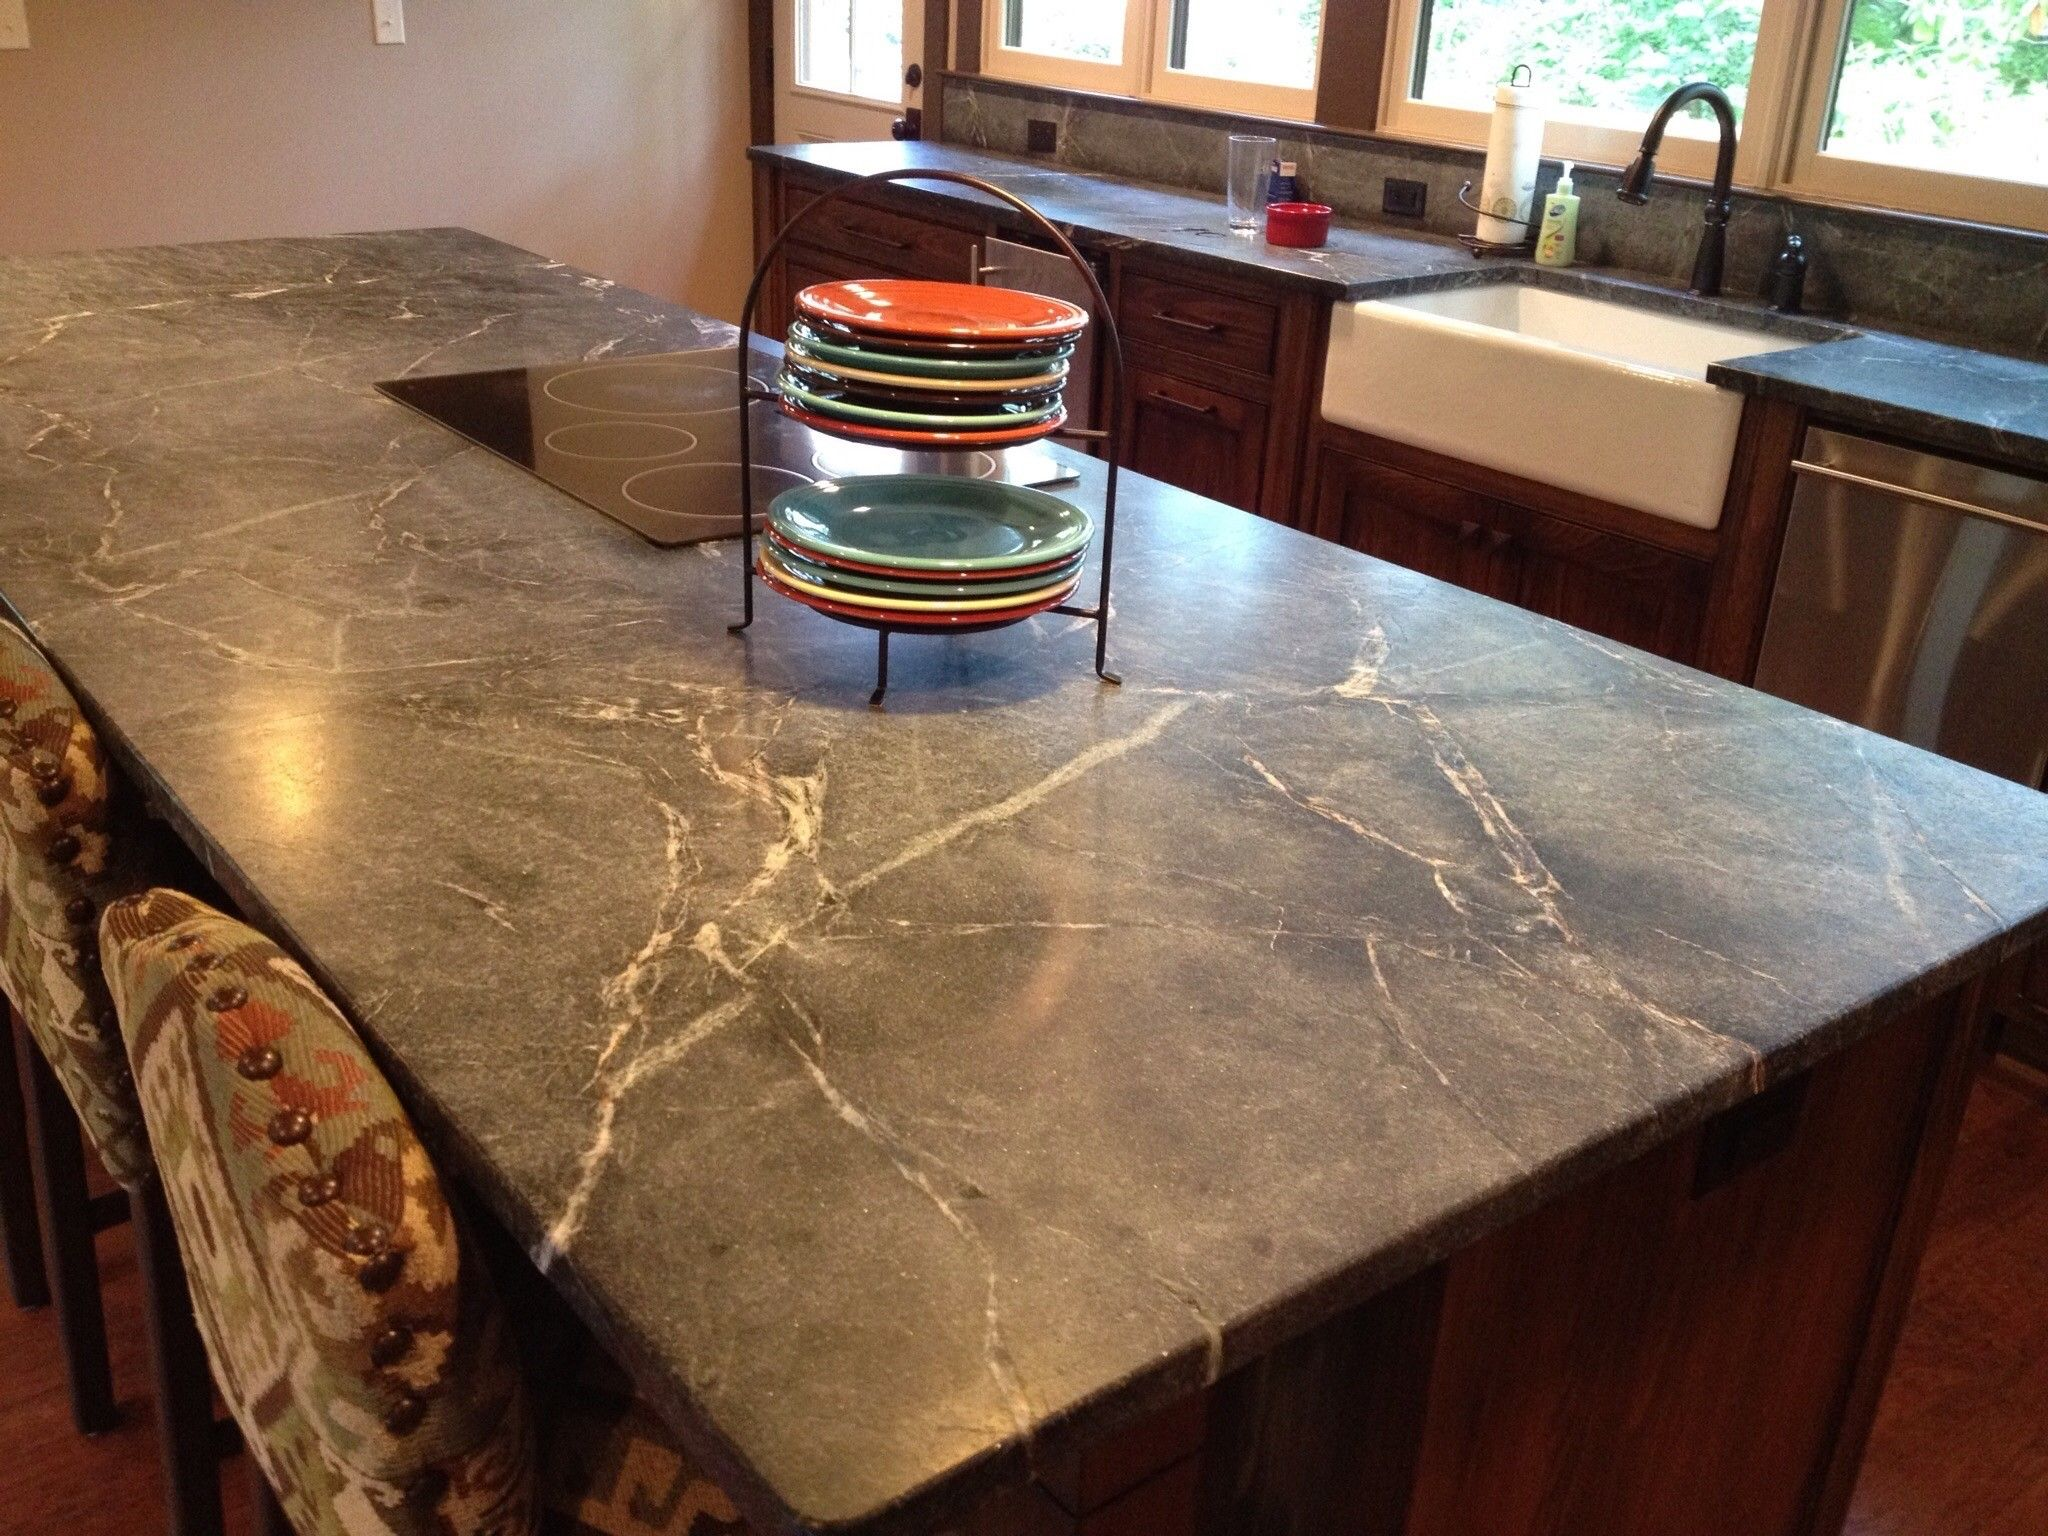 Delicieux Remodel Kitchen Design With Soapstone Countertops Cost Plus Modern  Furniture Interior: How Much Is Soapstone Countertops | Imagefriend Com  Your Friend